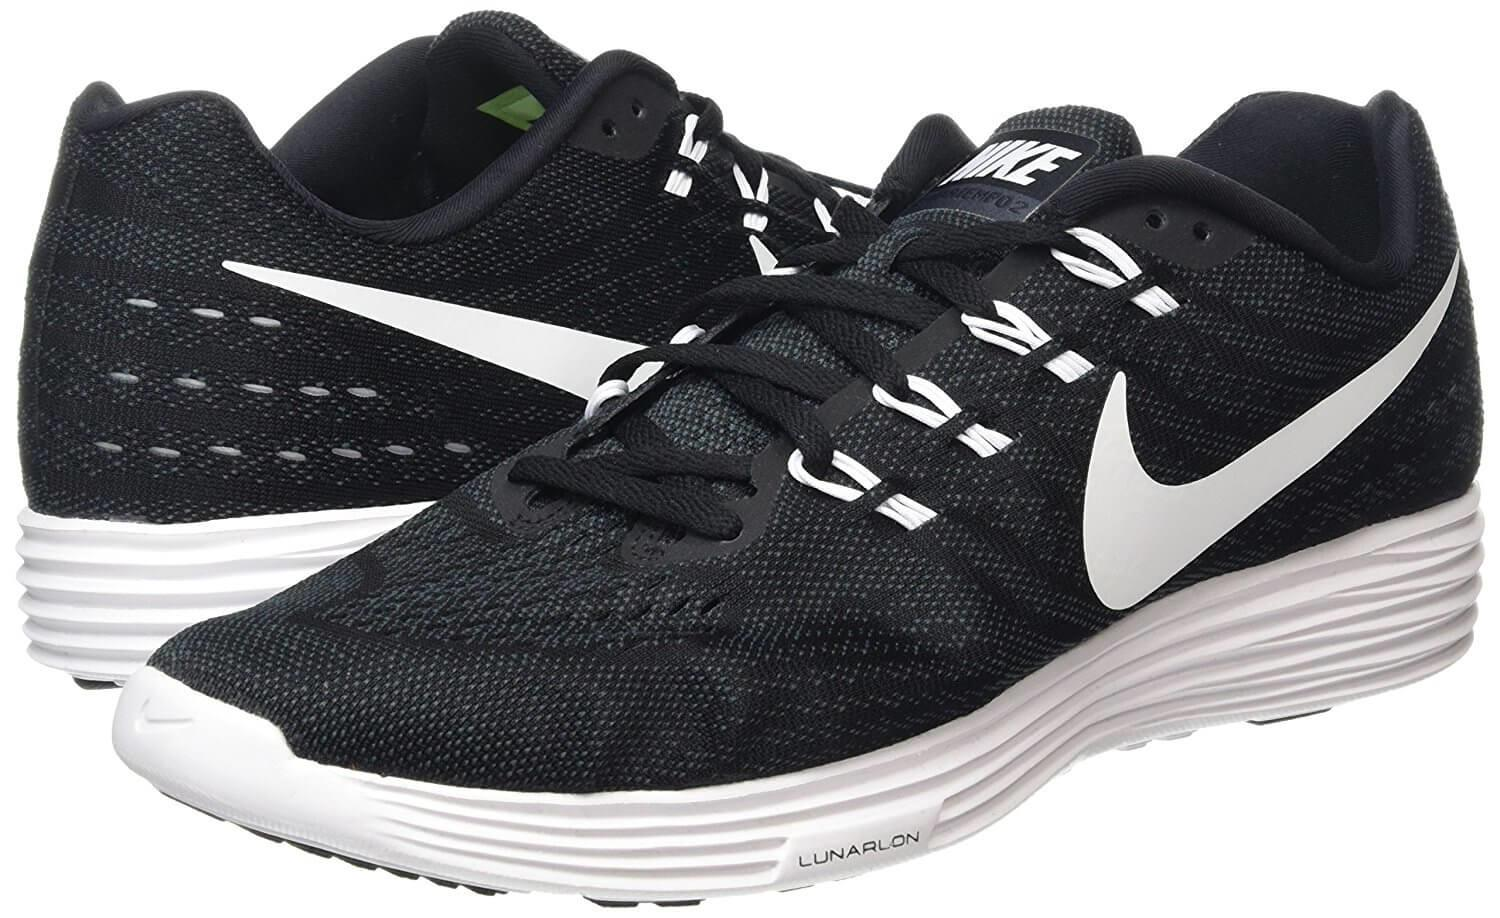 Cheap Nike LunarTempo 2 Men's Running Shoes